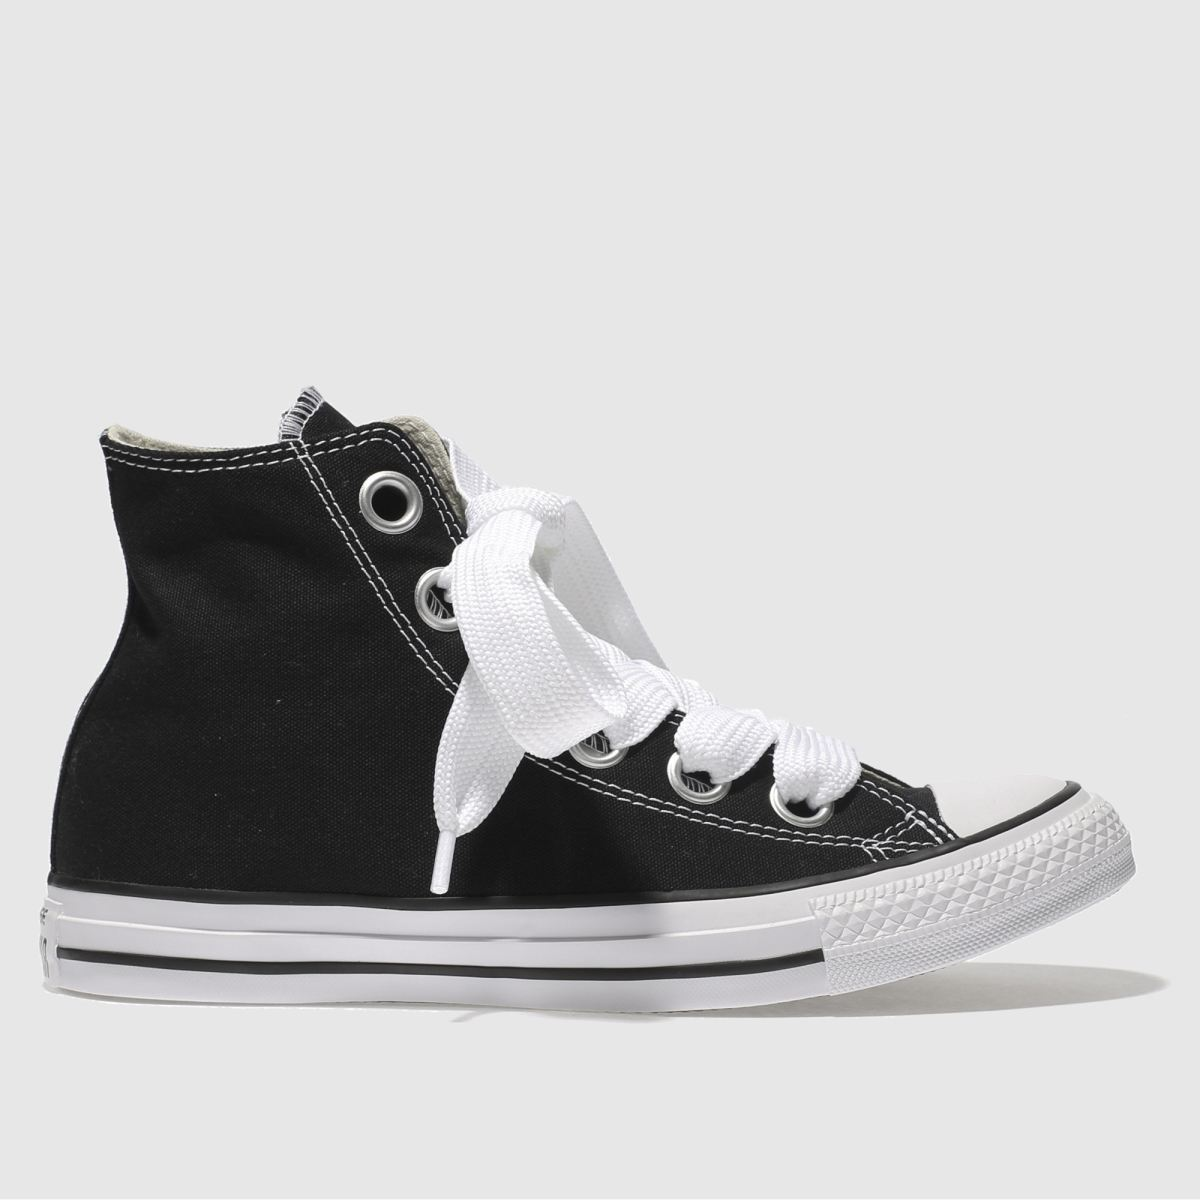 Converse Black & White All Star Big Eyelets Hi Trainers